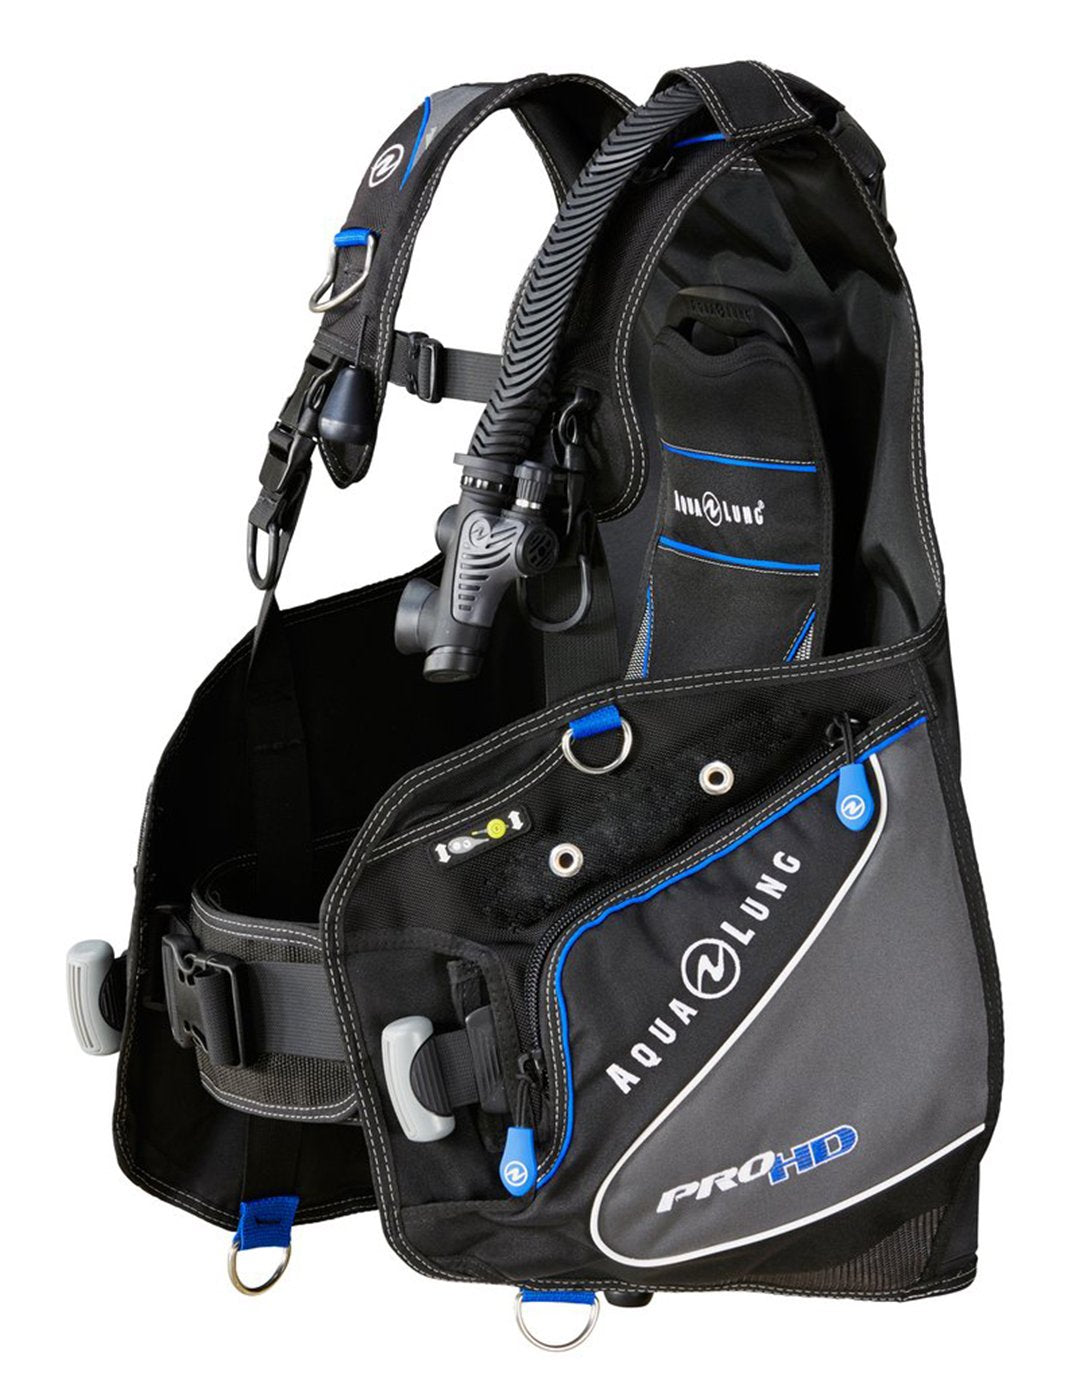 Image of Aqua Lung Pro HD BCD